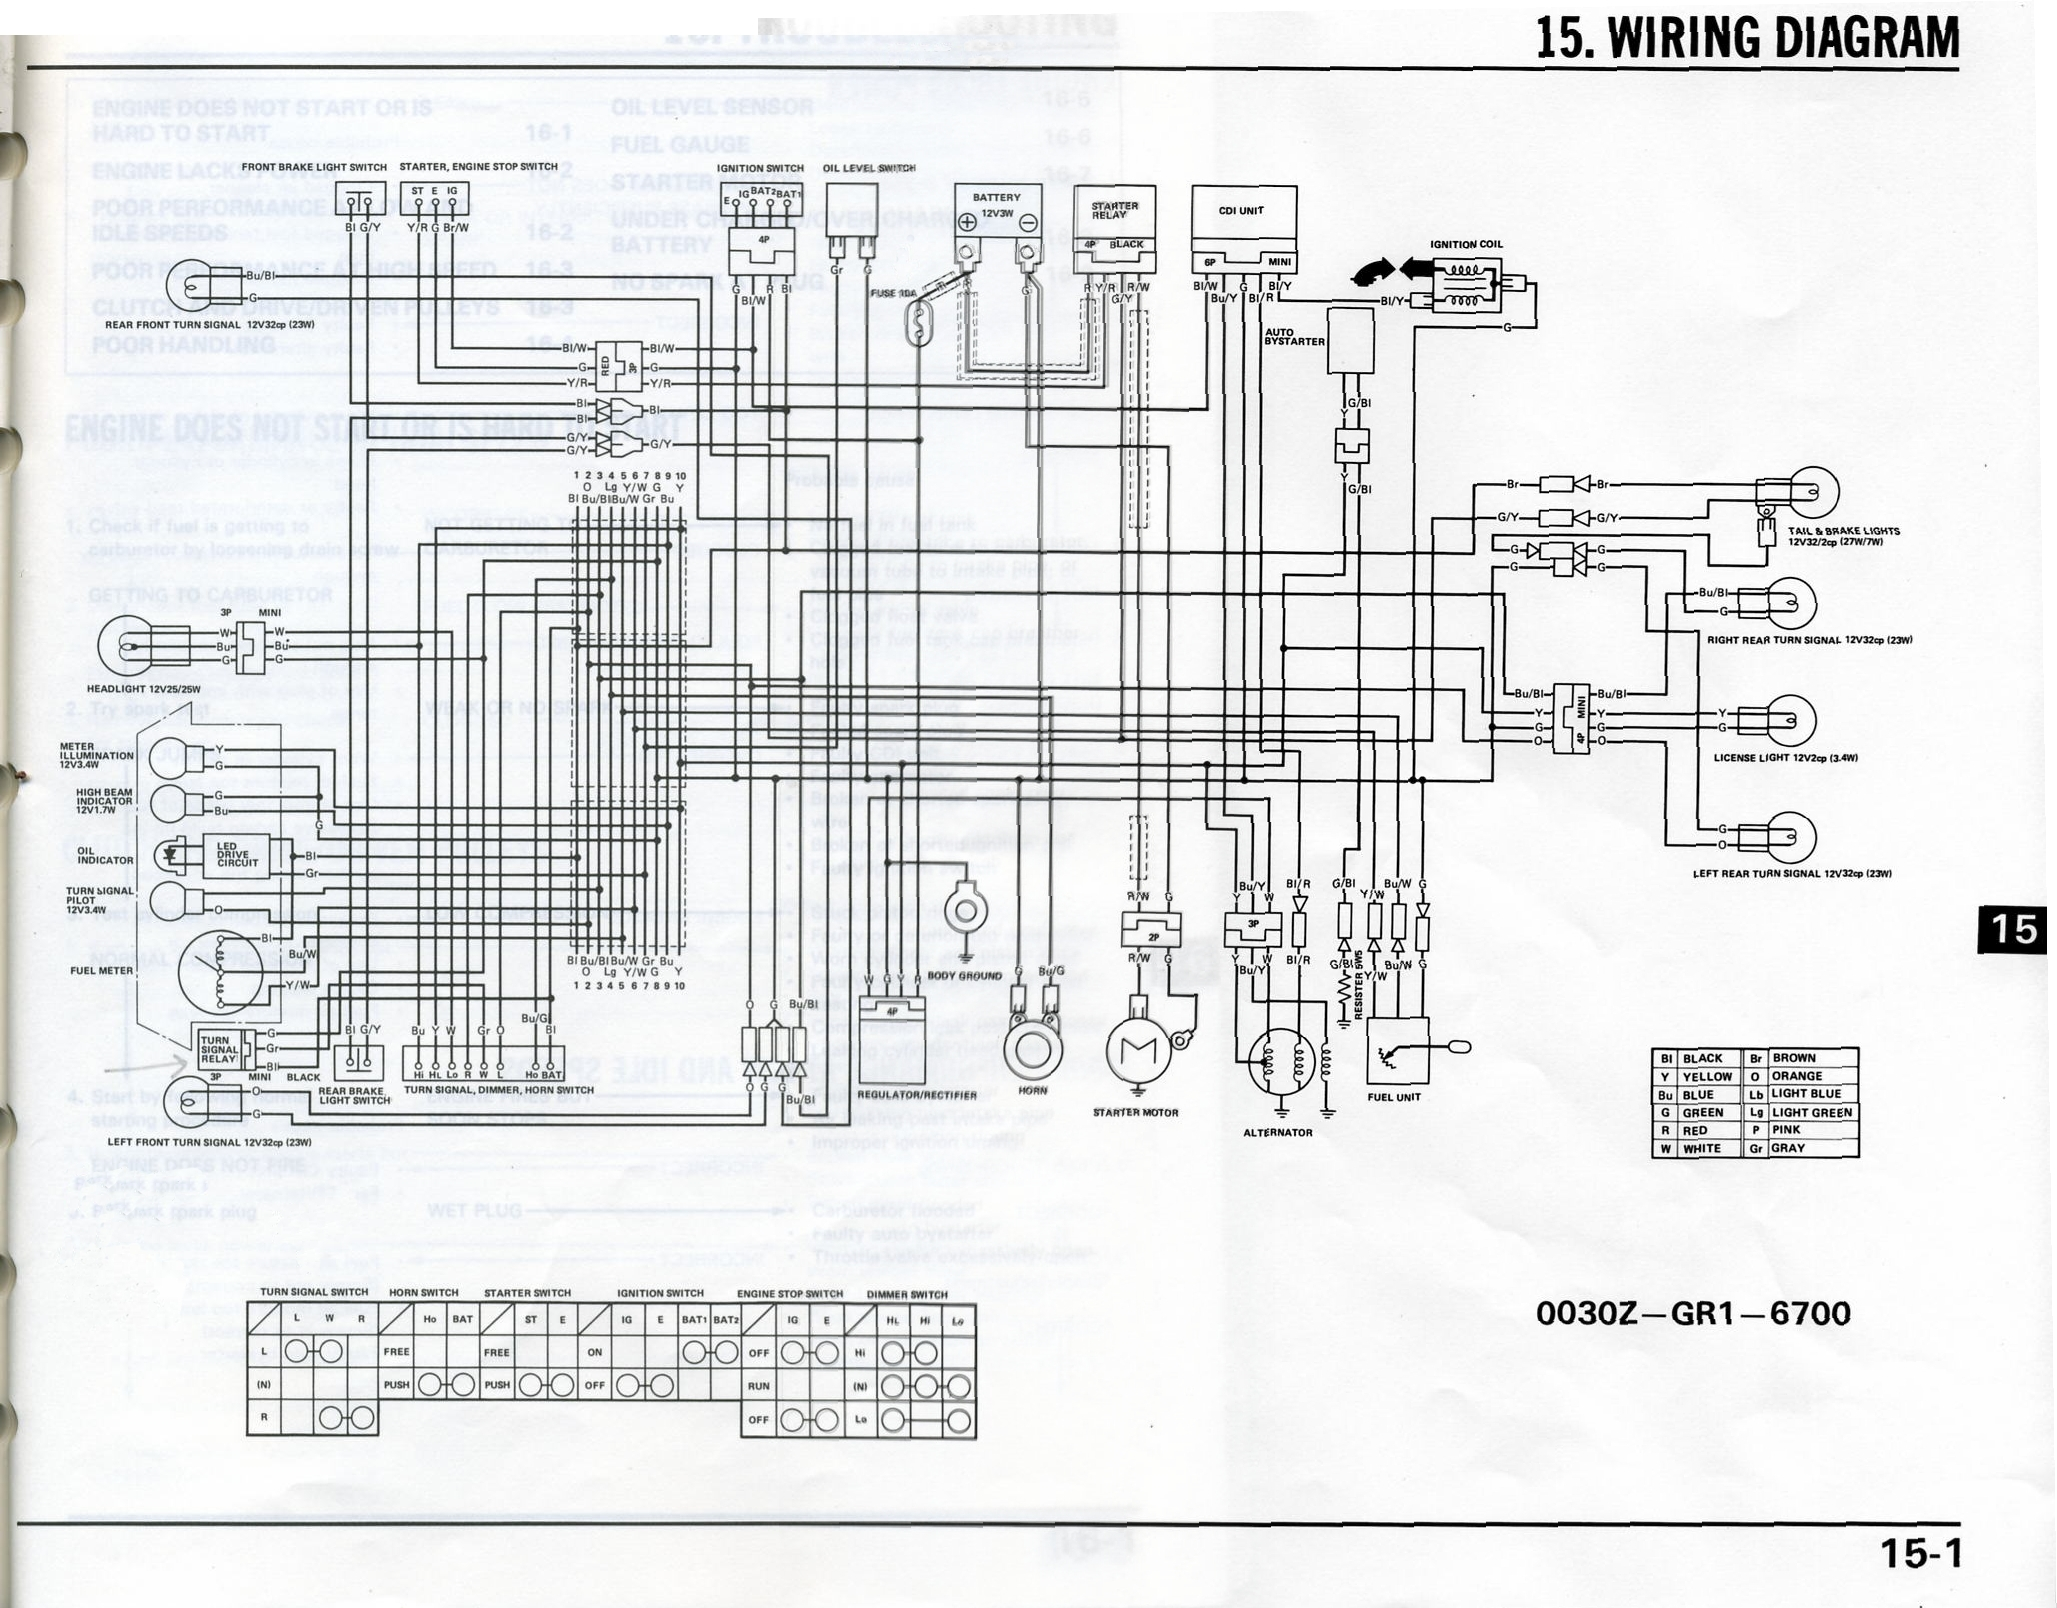 2005 Honda Elite 80 Wiring Diagram Explore Schematic Kit Search For Diagrams Manual Product User Guide Instruction U2022 Rh Testdpc Co 1993 Accord